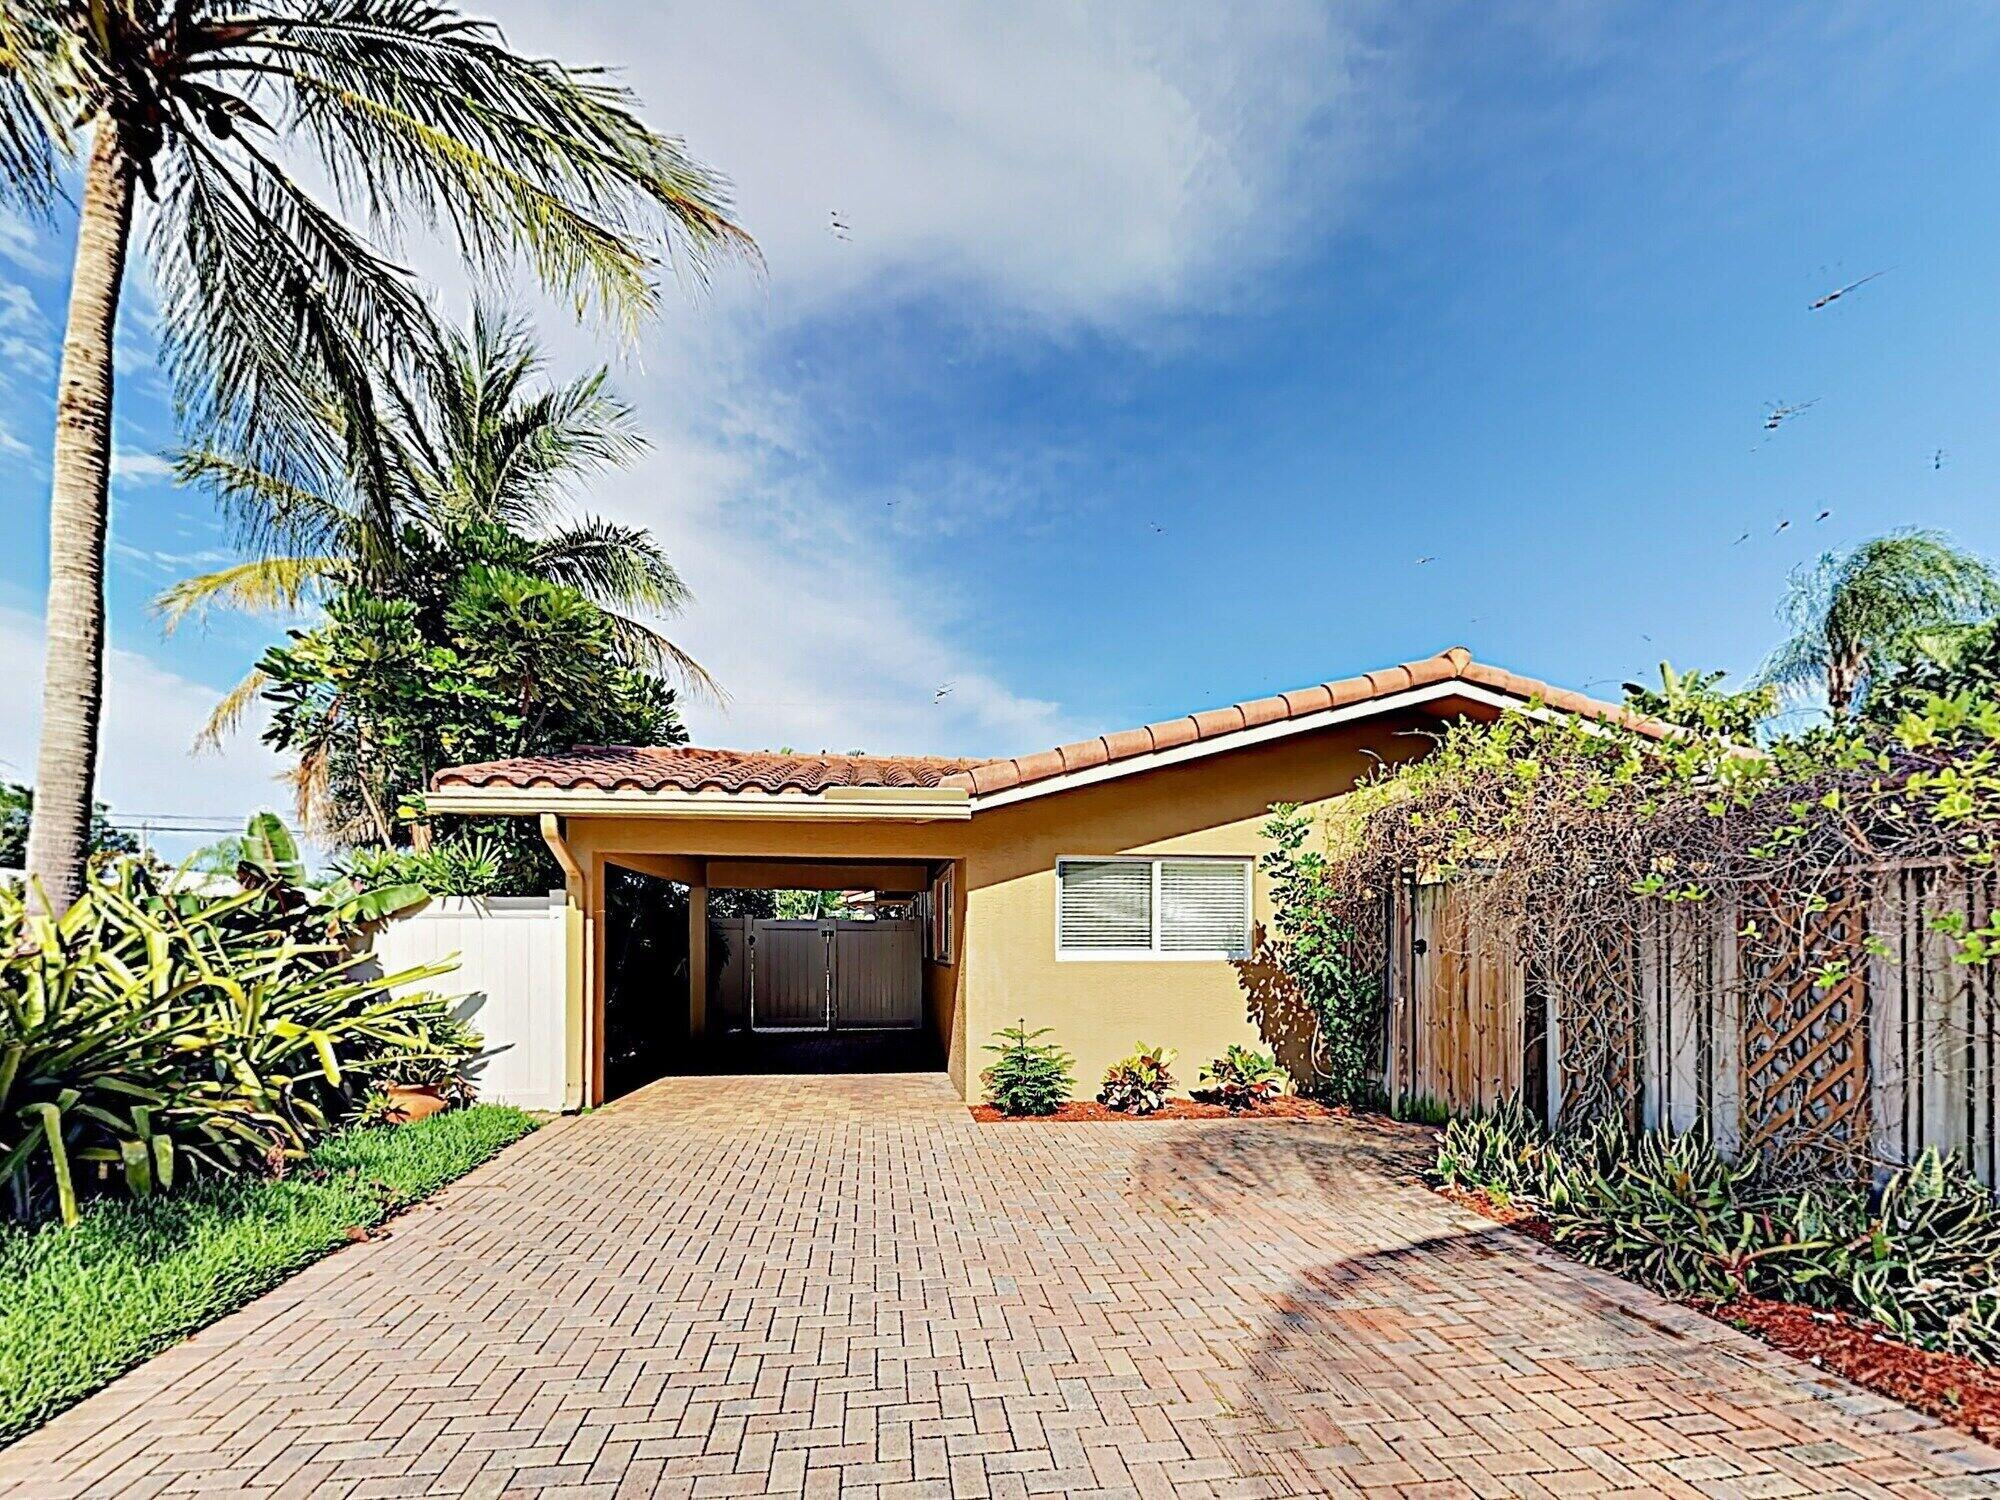 New Listing Spanish style W pool Nearby Beach 3 Bedroom Home